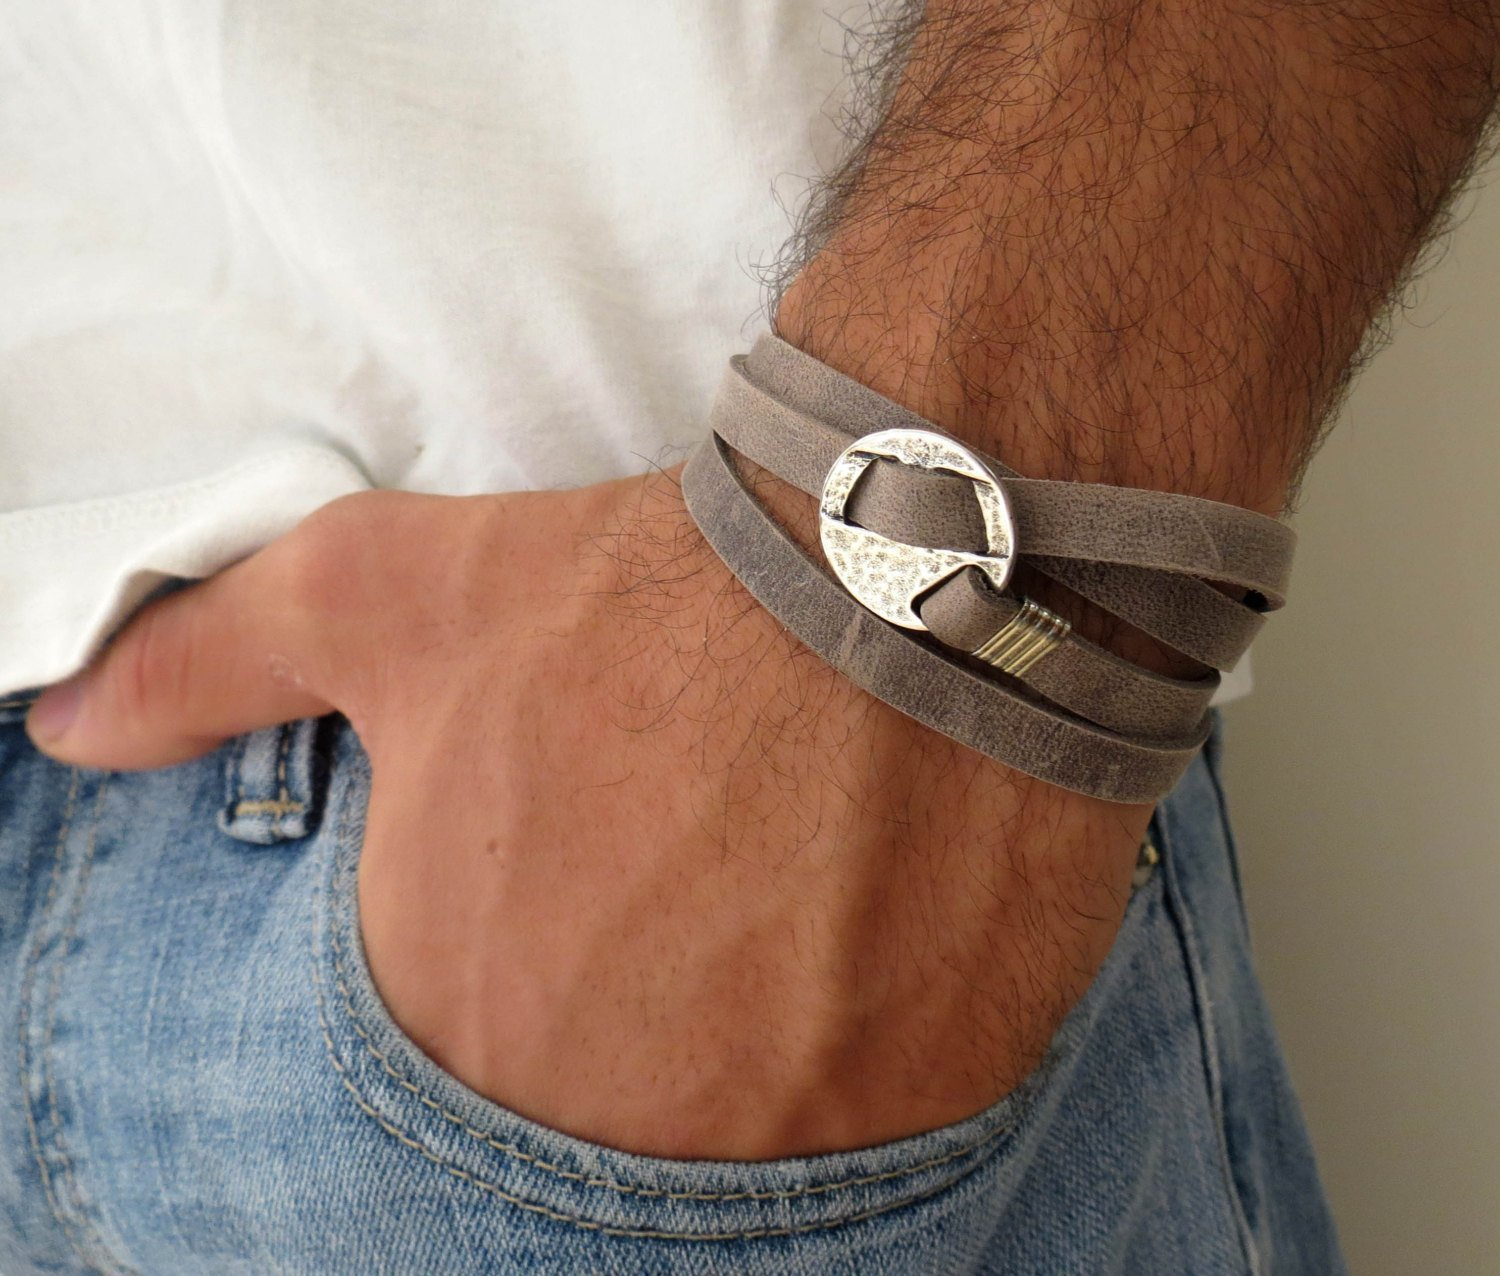 Handmade Wrap Gray Genuine Leather Bracelet For Men Set With Silver Plated Circle Pendant By Galis Jewelry - Geometric Bracelet For Men - Gray Bracelet For Men - Jewelry For Men